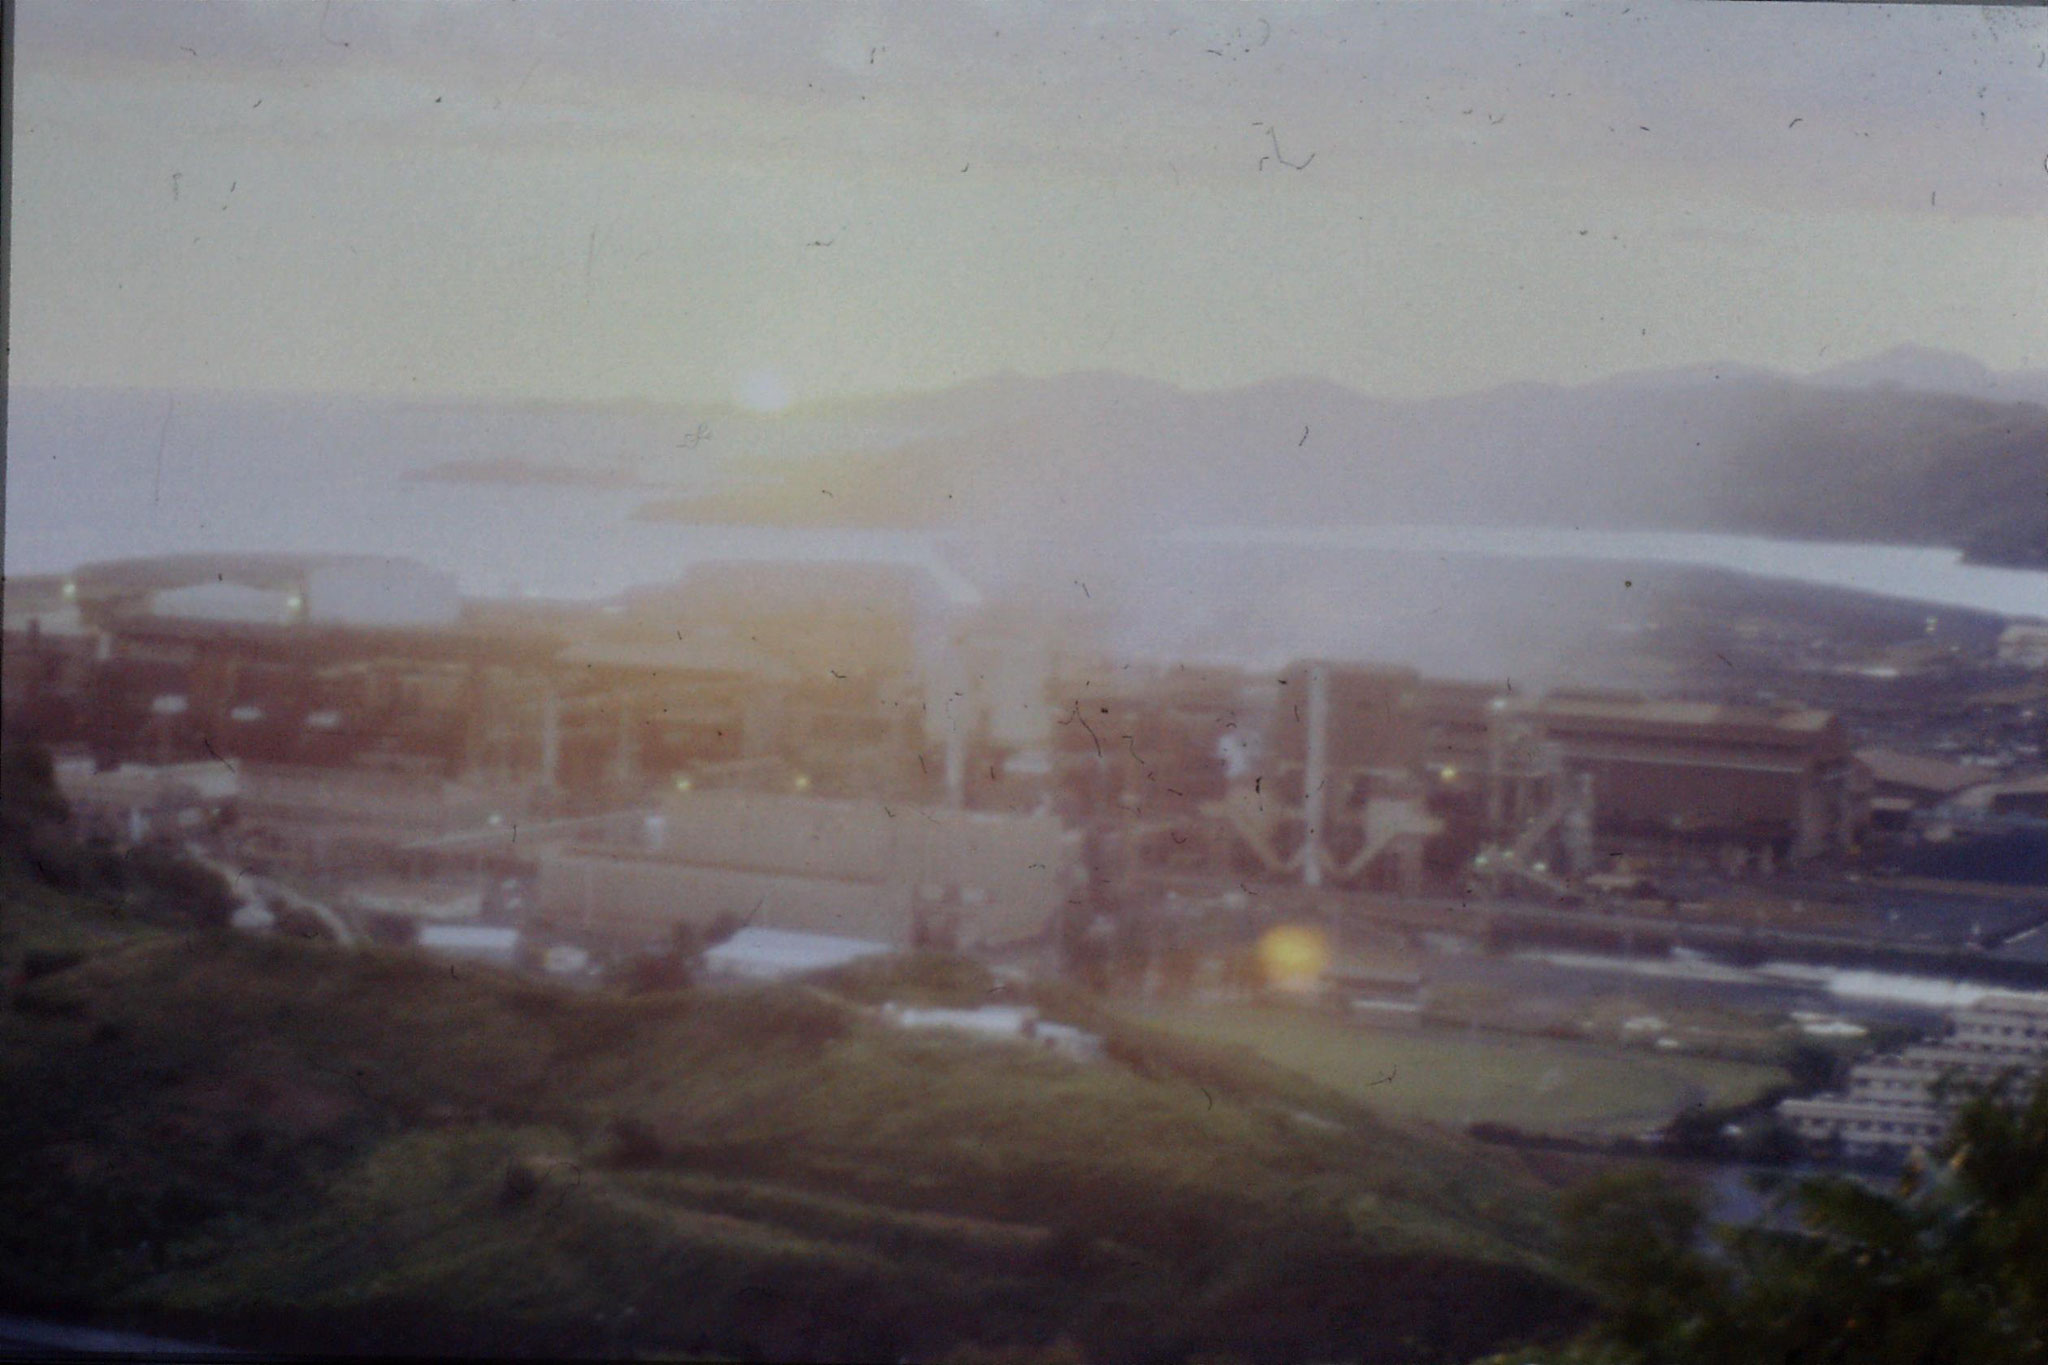 19/7/1990: 20: Noumea, nickel smelter